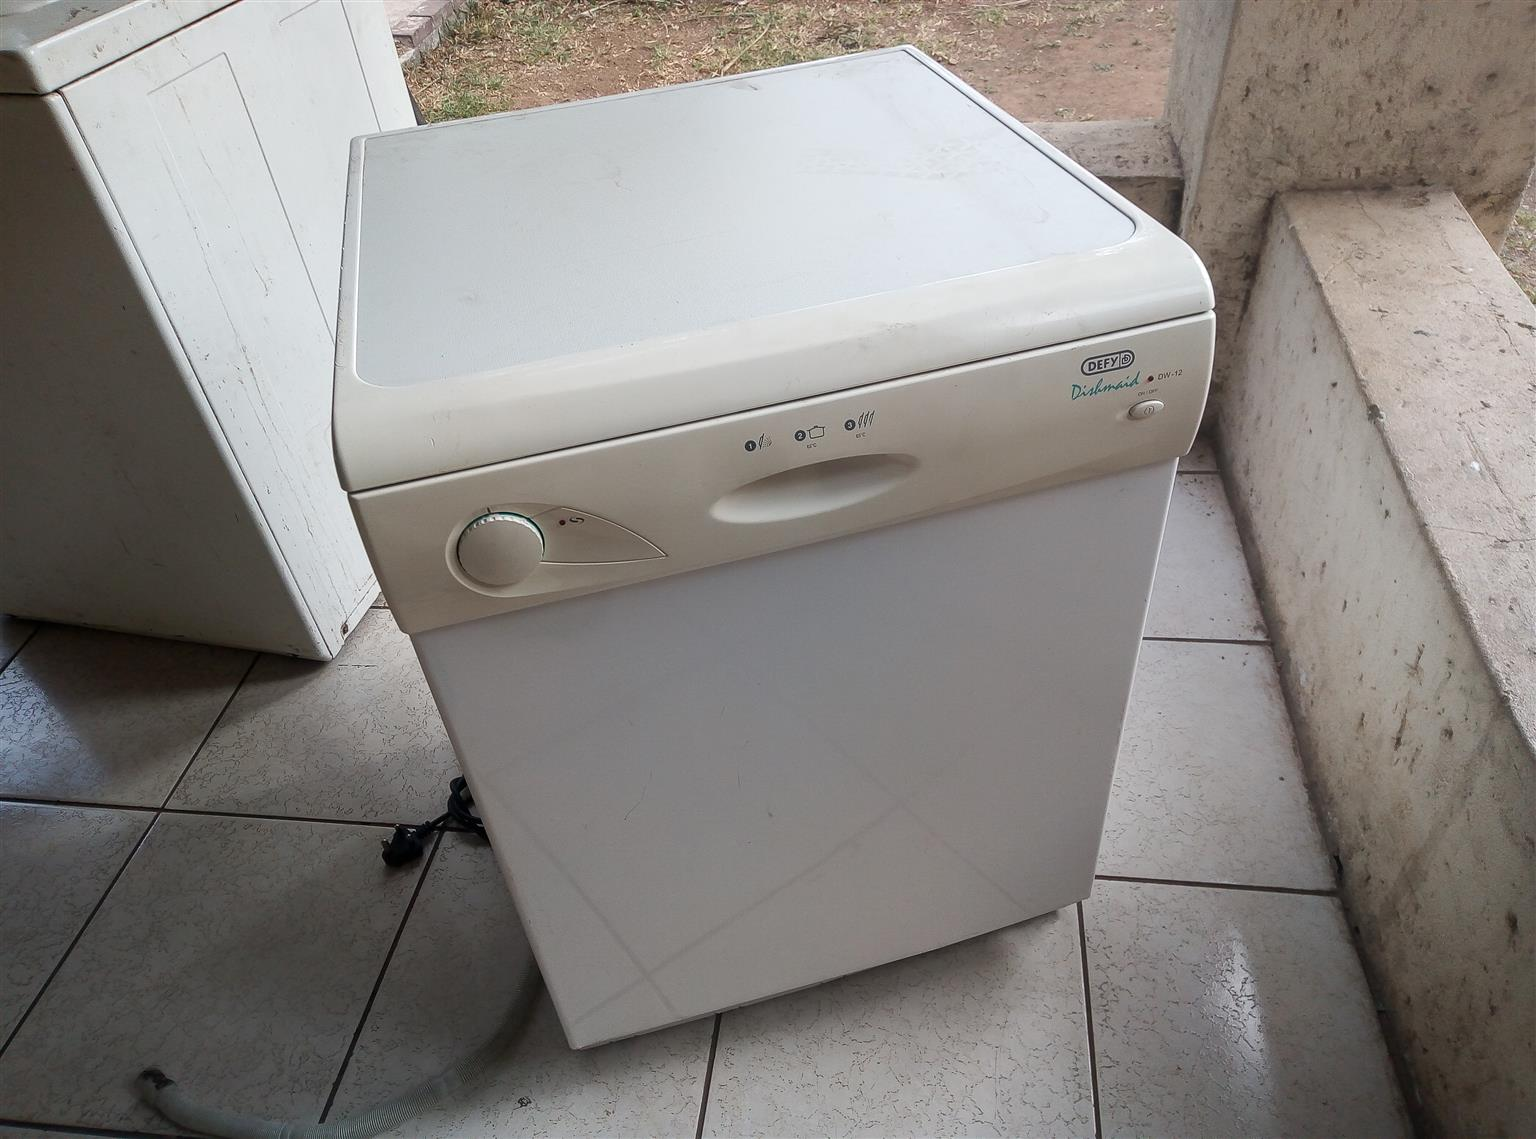 BED, FRIDGE, DISH WASHER FOR SALE IN GOOD CONDITION 0743444607